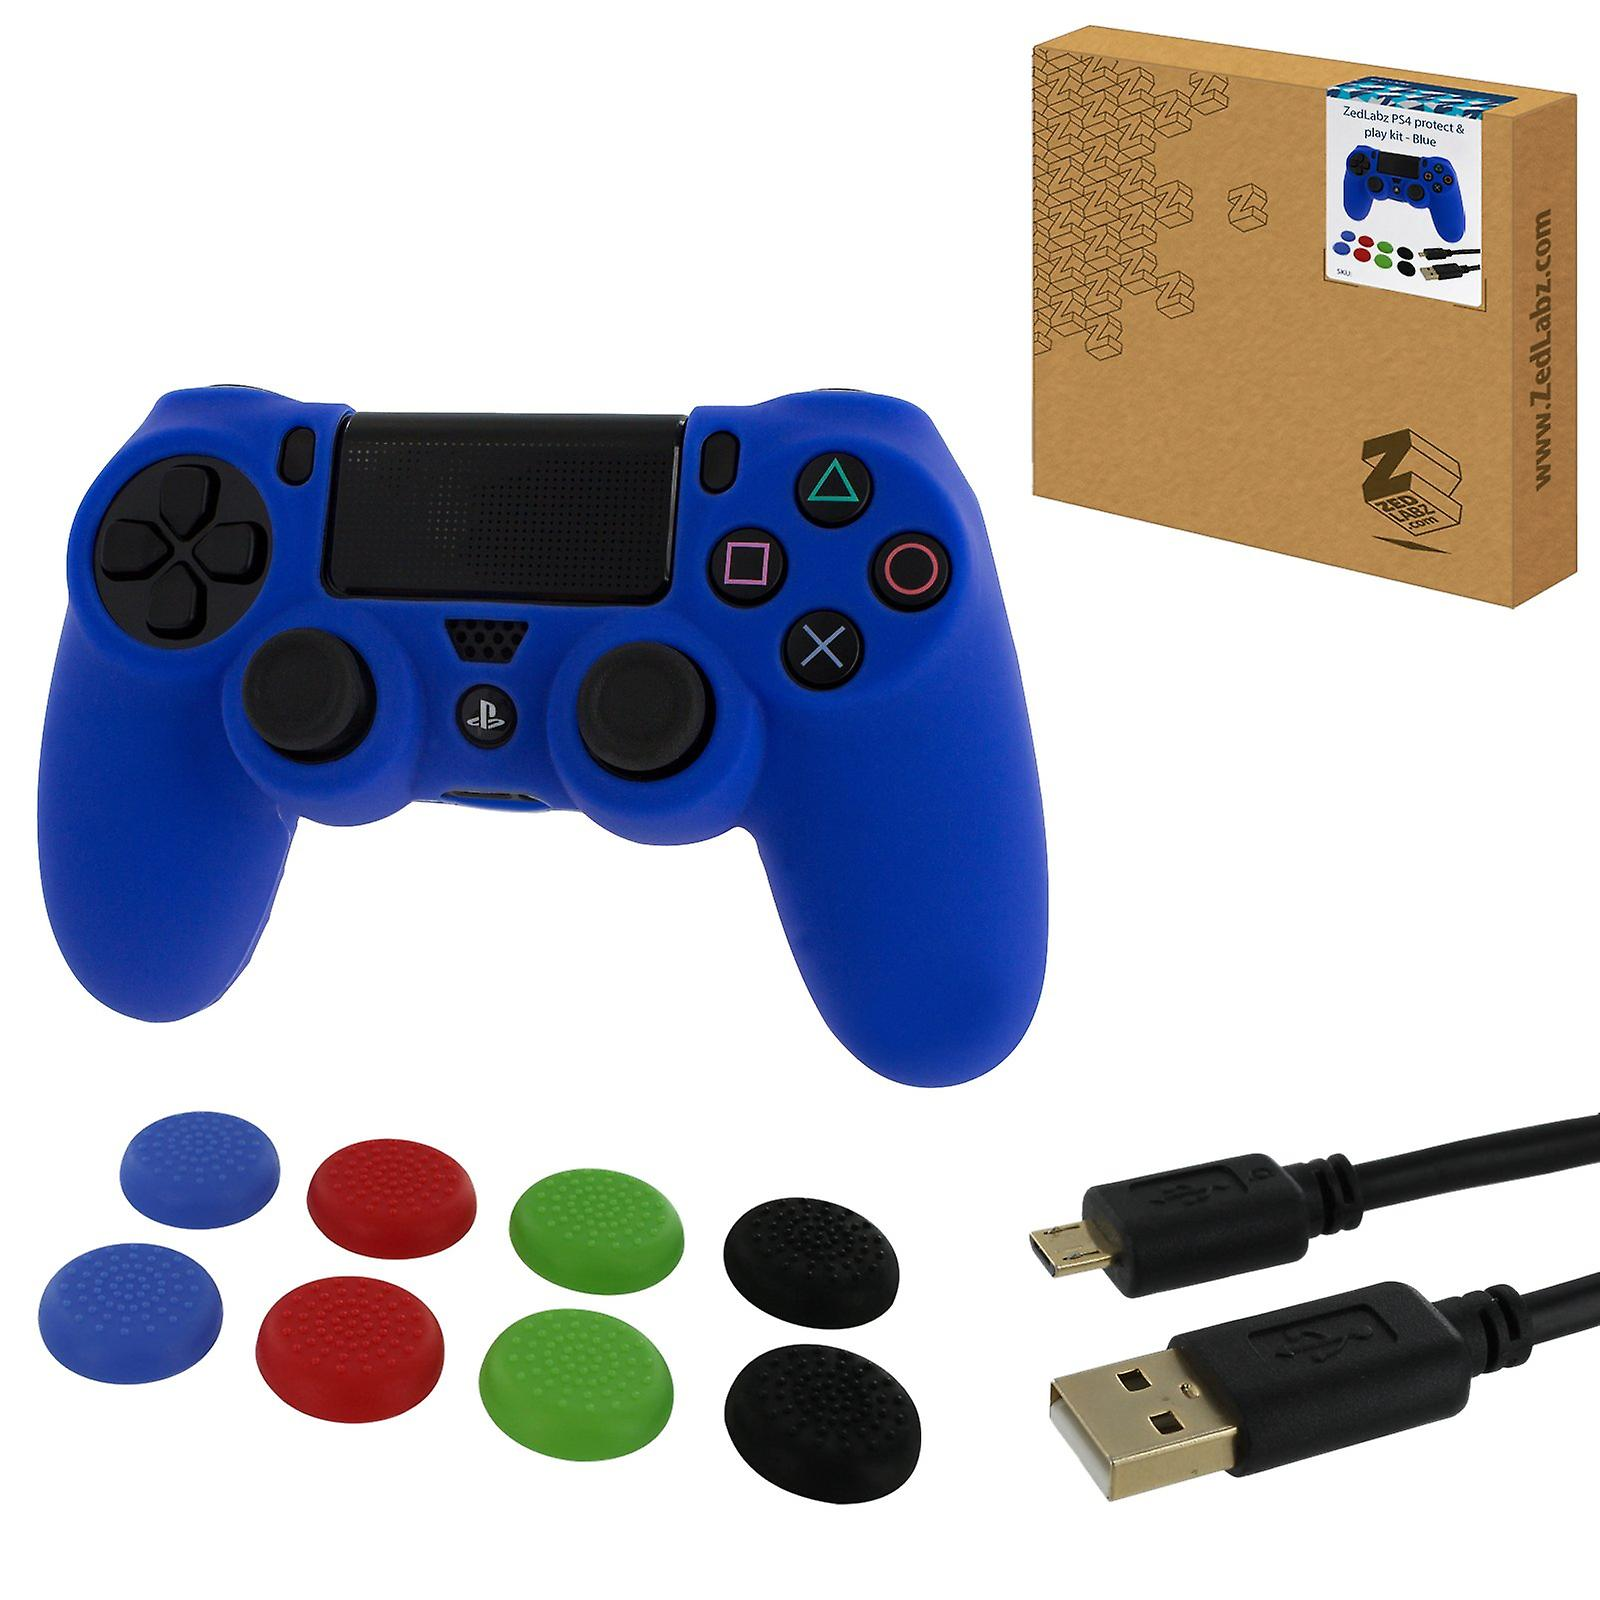 Protect & play kit for ps4 inc silicone cover, thumb grips & 3m charging cable - blue